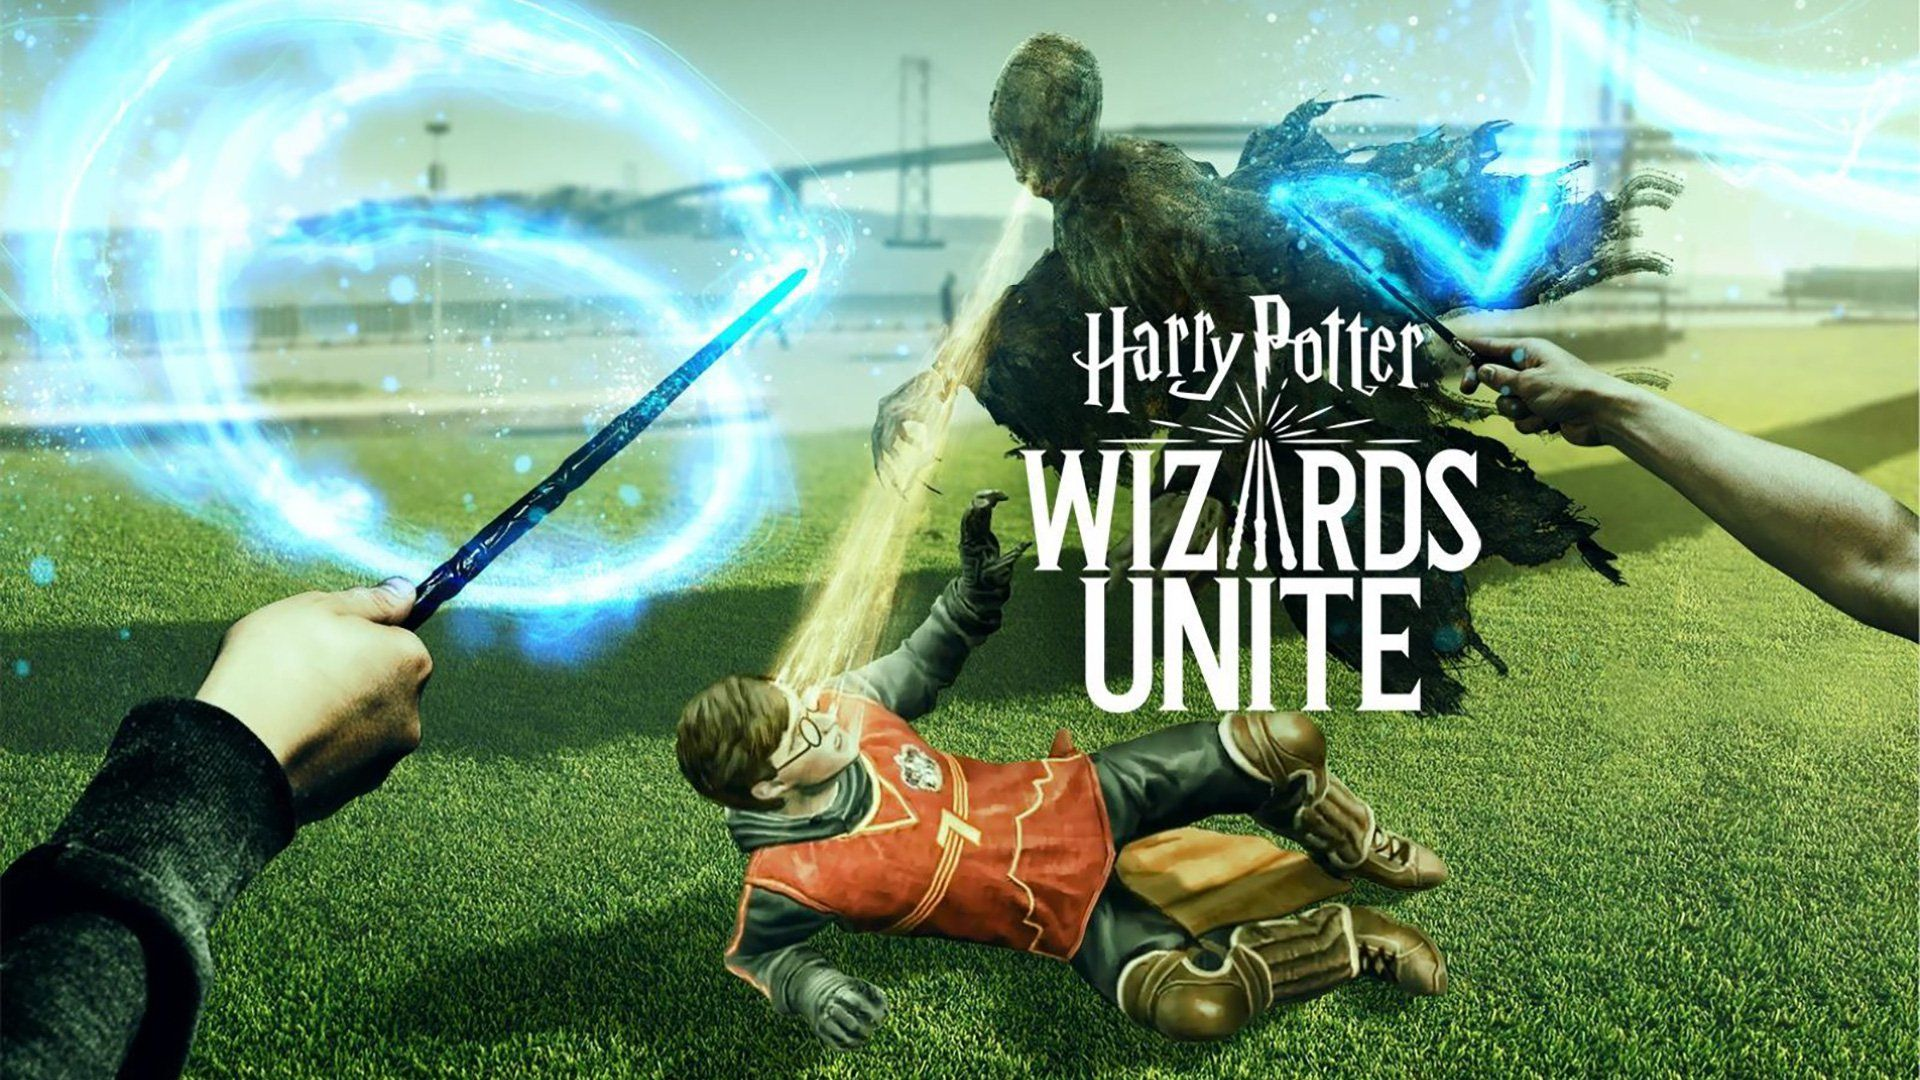 Harry Potter Wizards Unite Releasing For Android And Ios This Friday Harry Potter Wizard Harry Potter Games Harry Potter